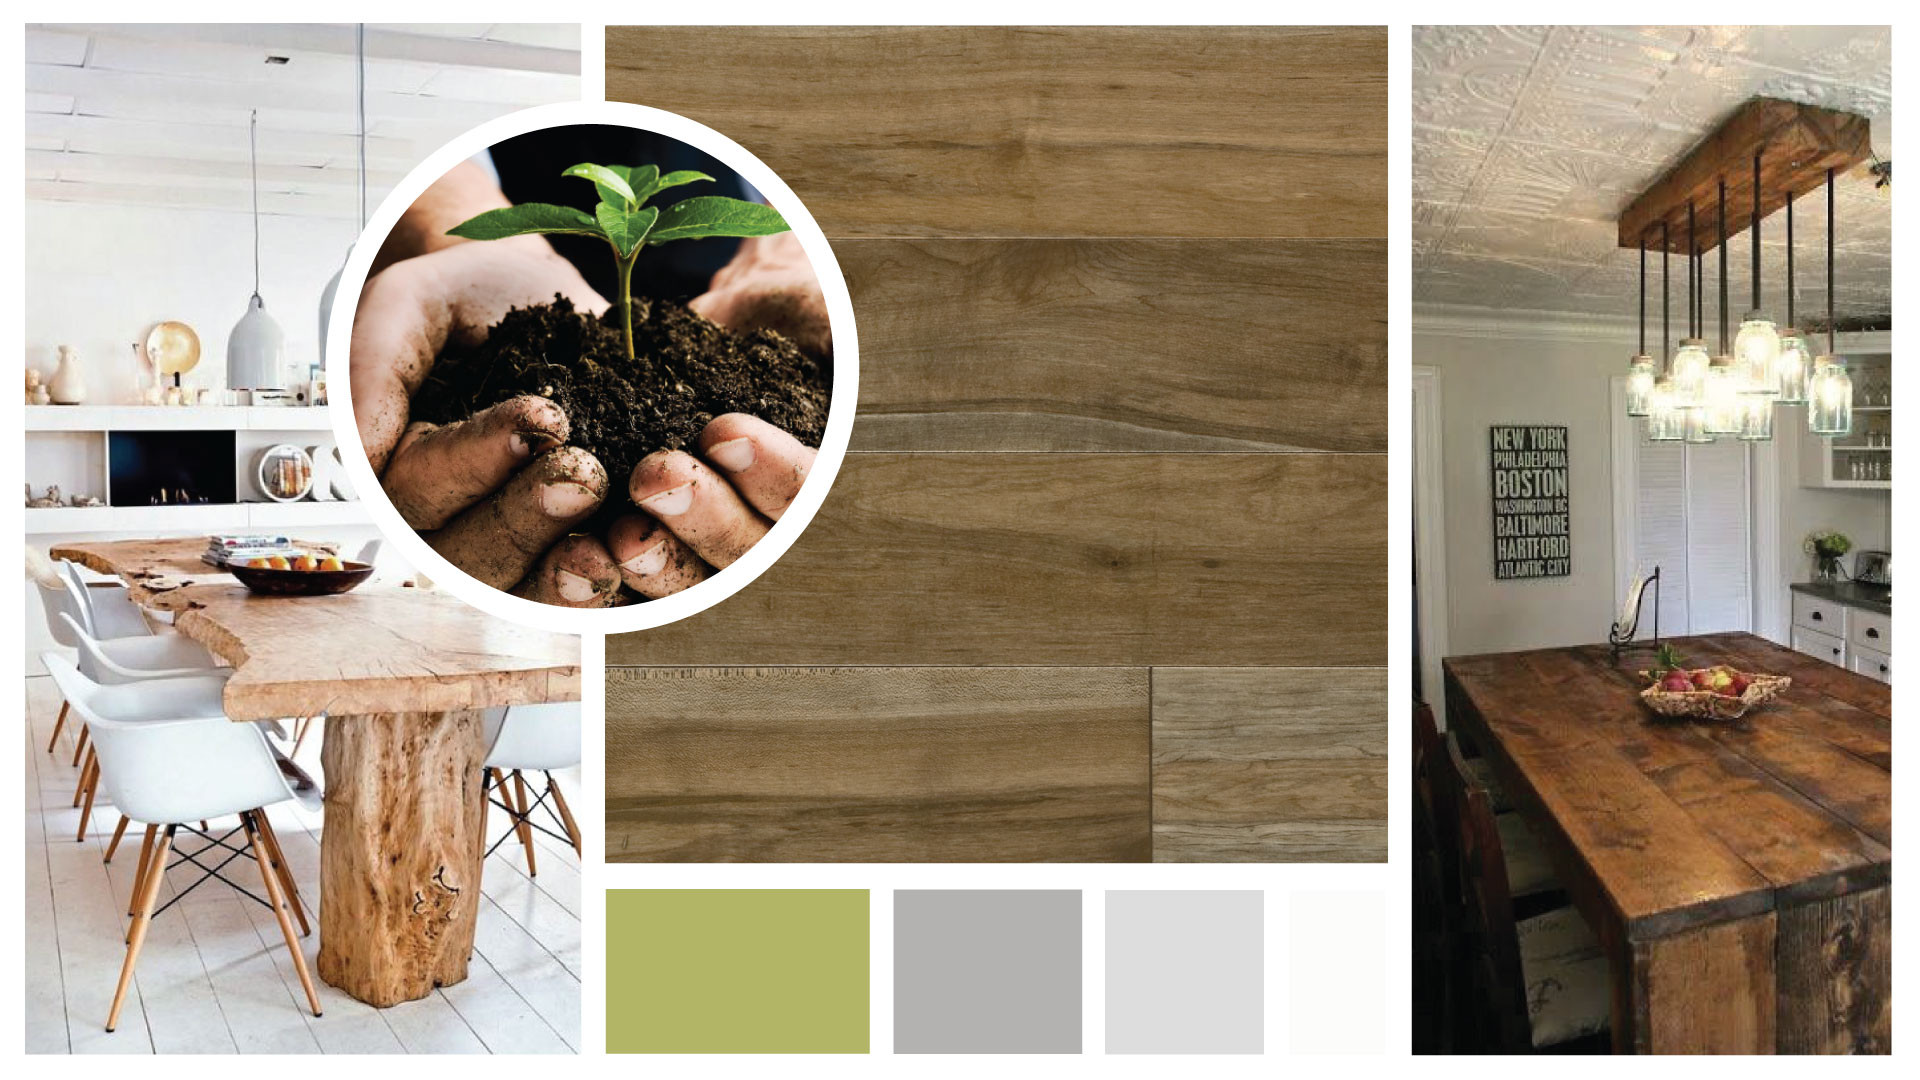 engineered hardwood flooring las vegas of 4 latest hardwood flooring trends lauzon flooring in in addition to being locally sourced our floors are produced with our breakthrough eco friendly process at lauzon green isnt just a color